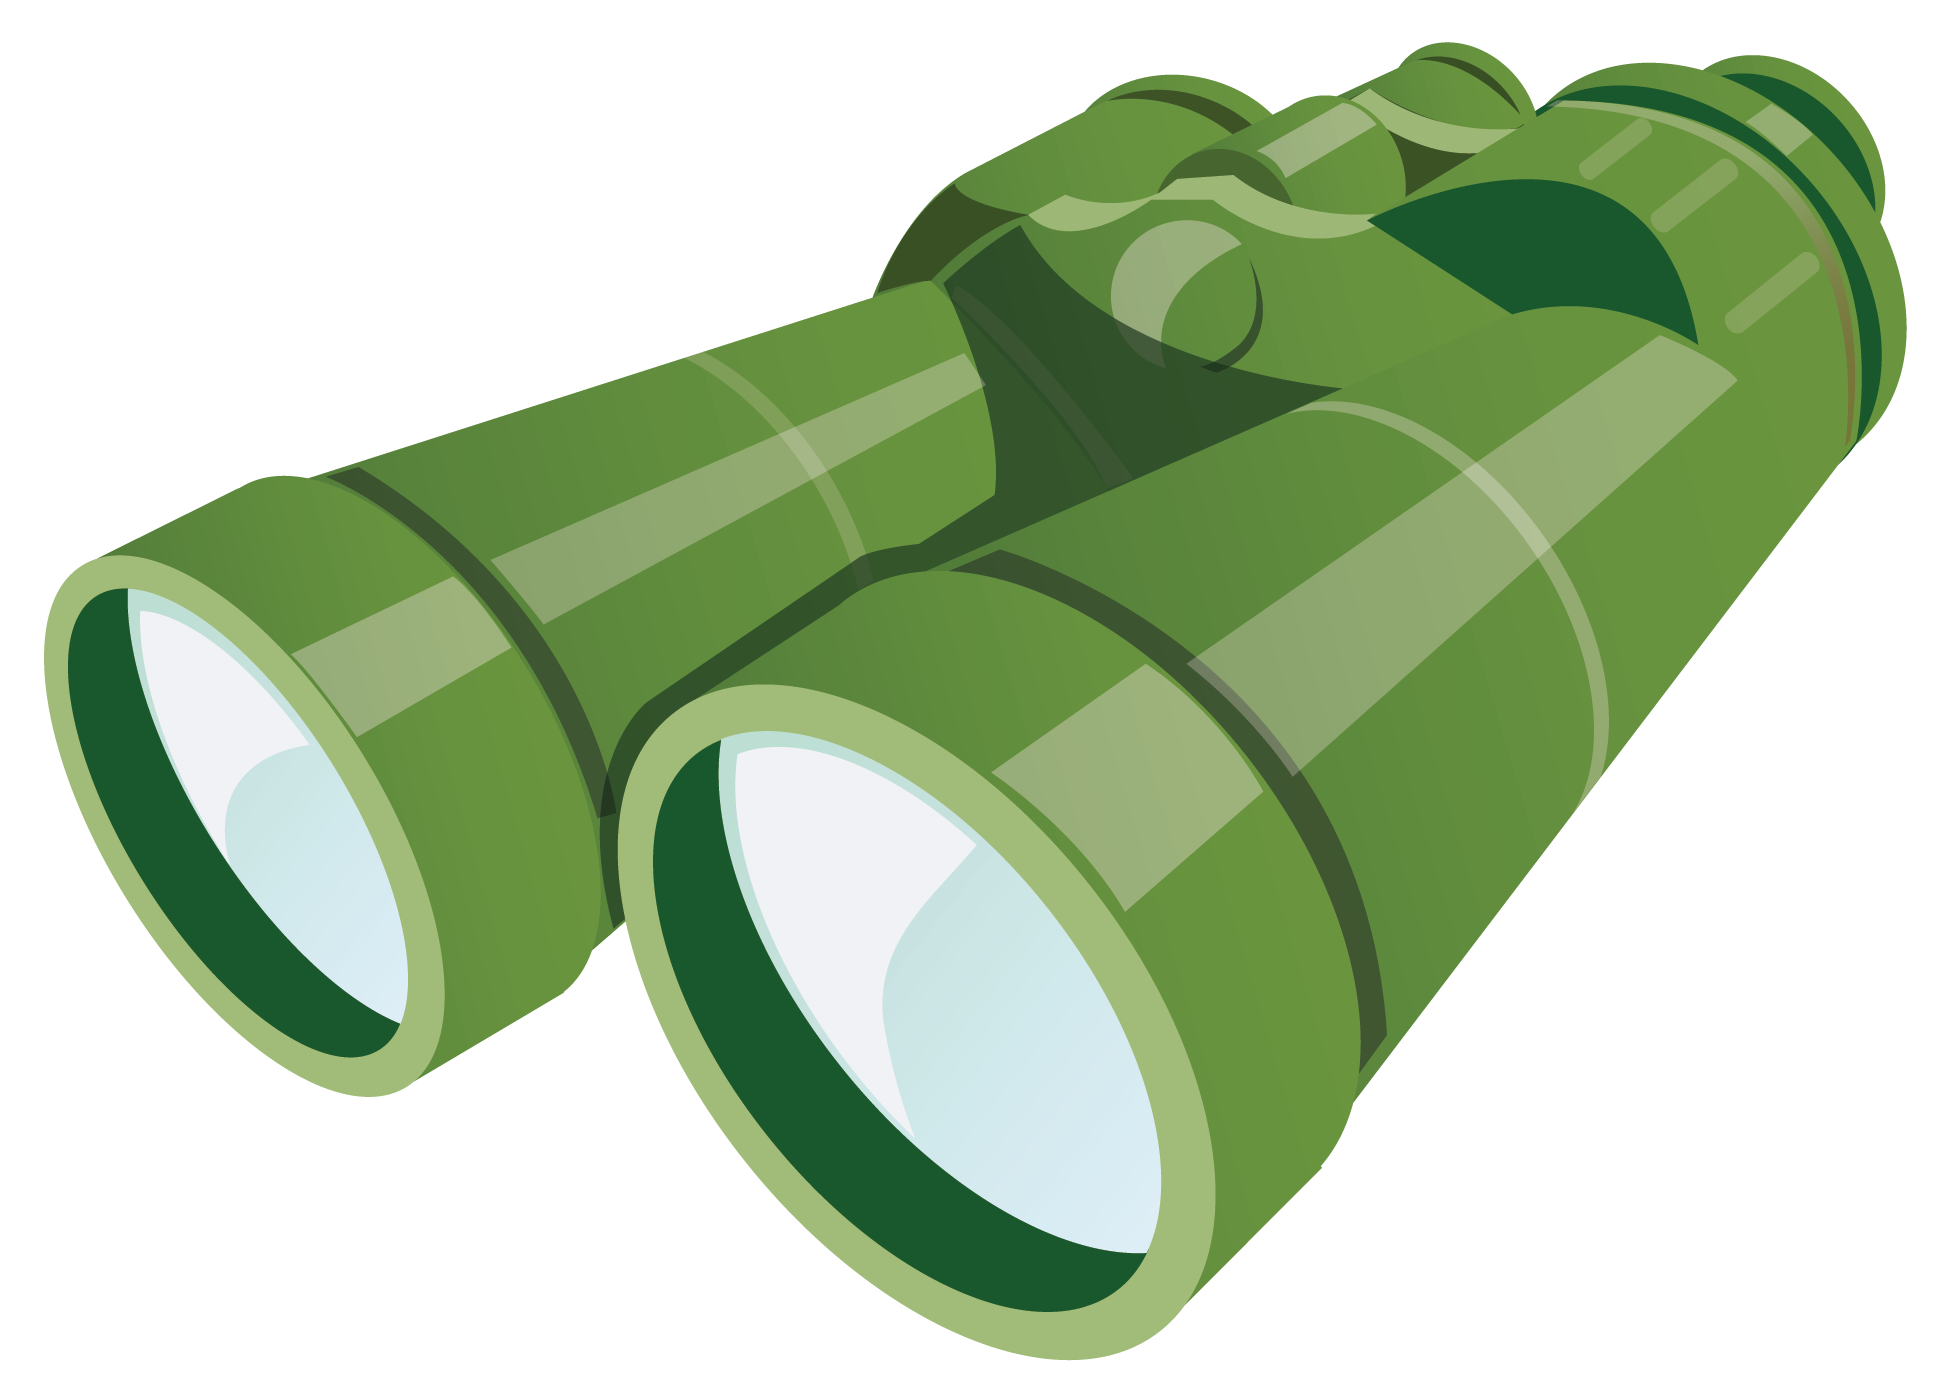 Clipart glasses waste. Green binoculars pencil and